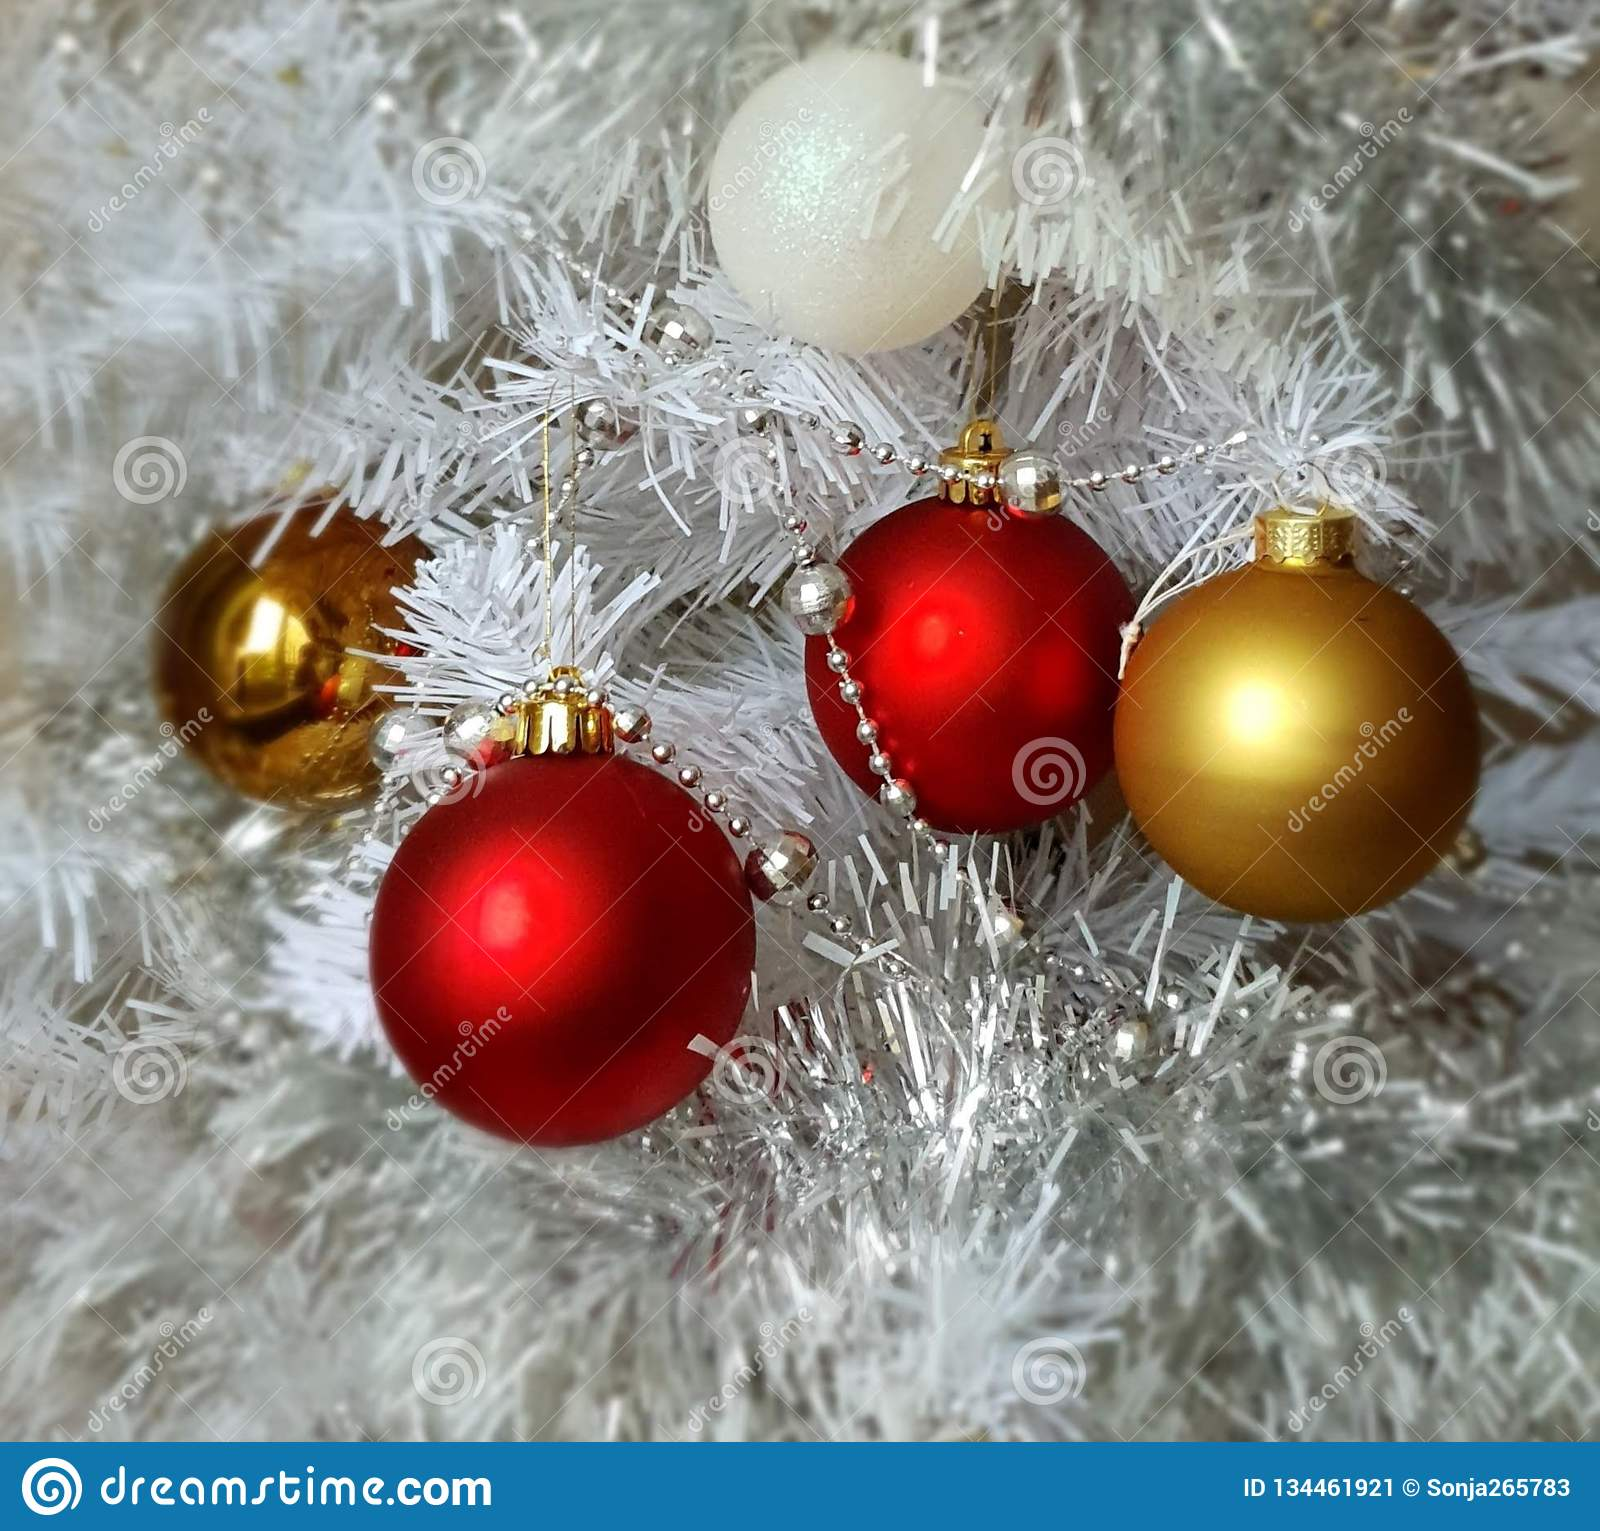 Red And Silver Christmas Decorations Ideas.Red Silver Christmas Decoration Colorful Ideas Red Silver